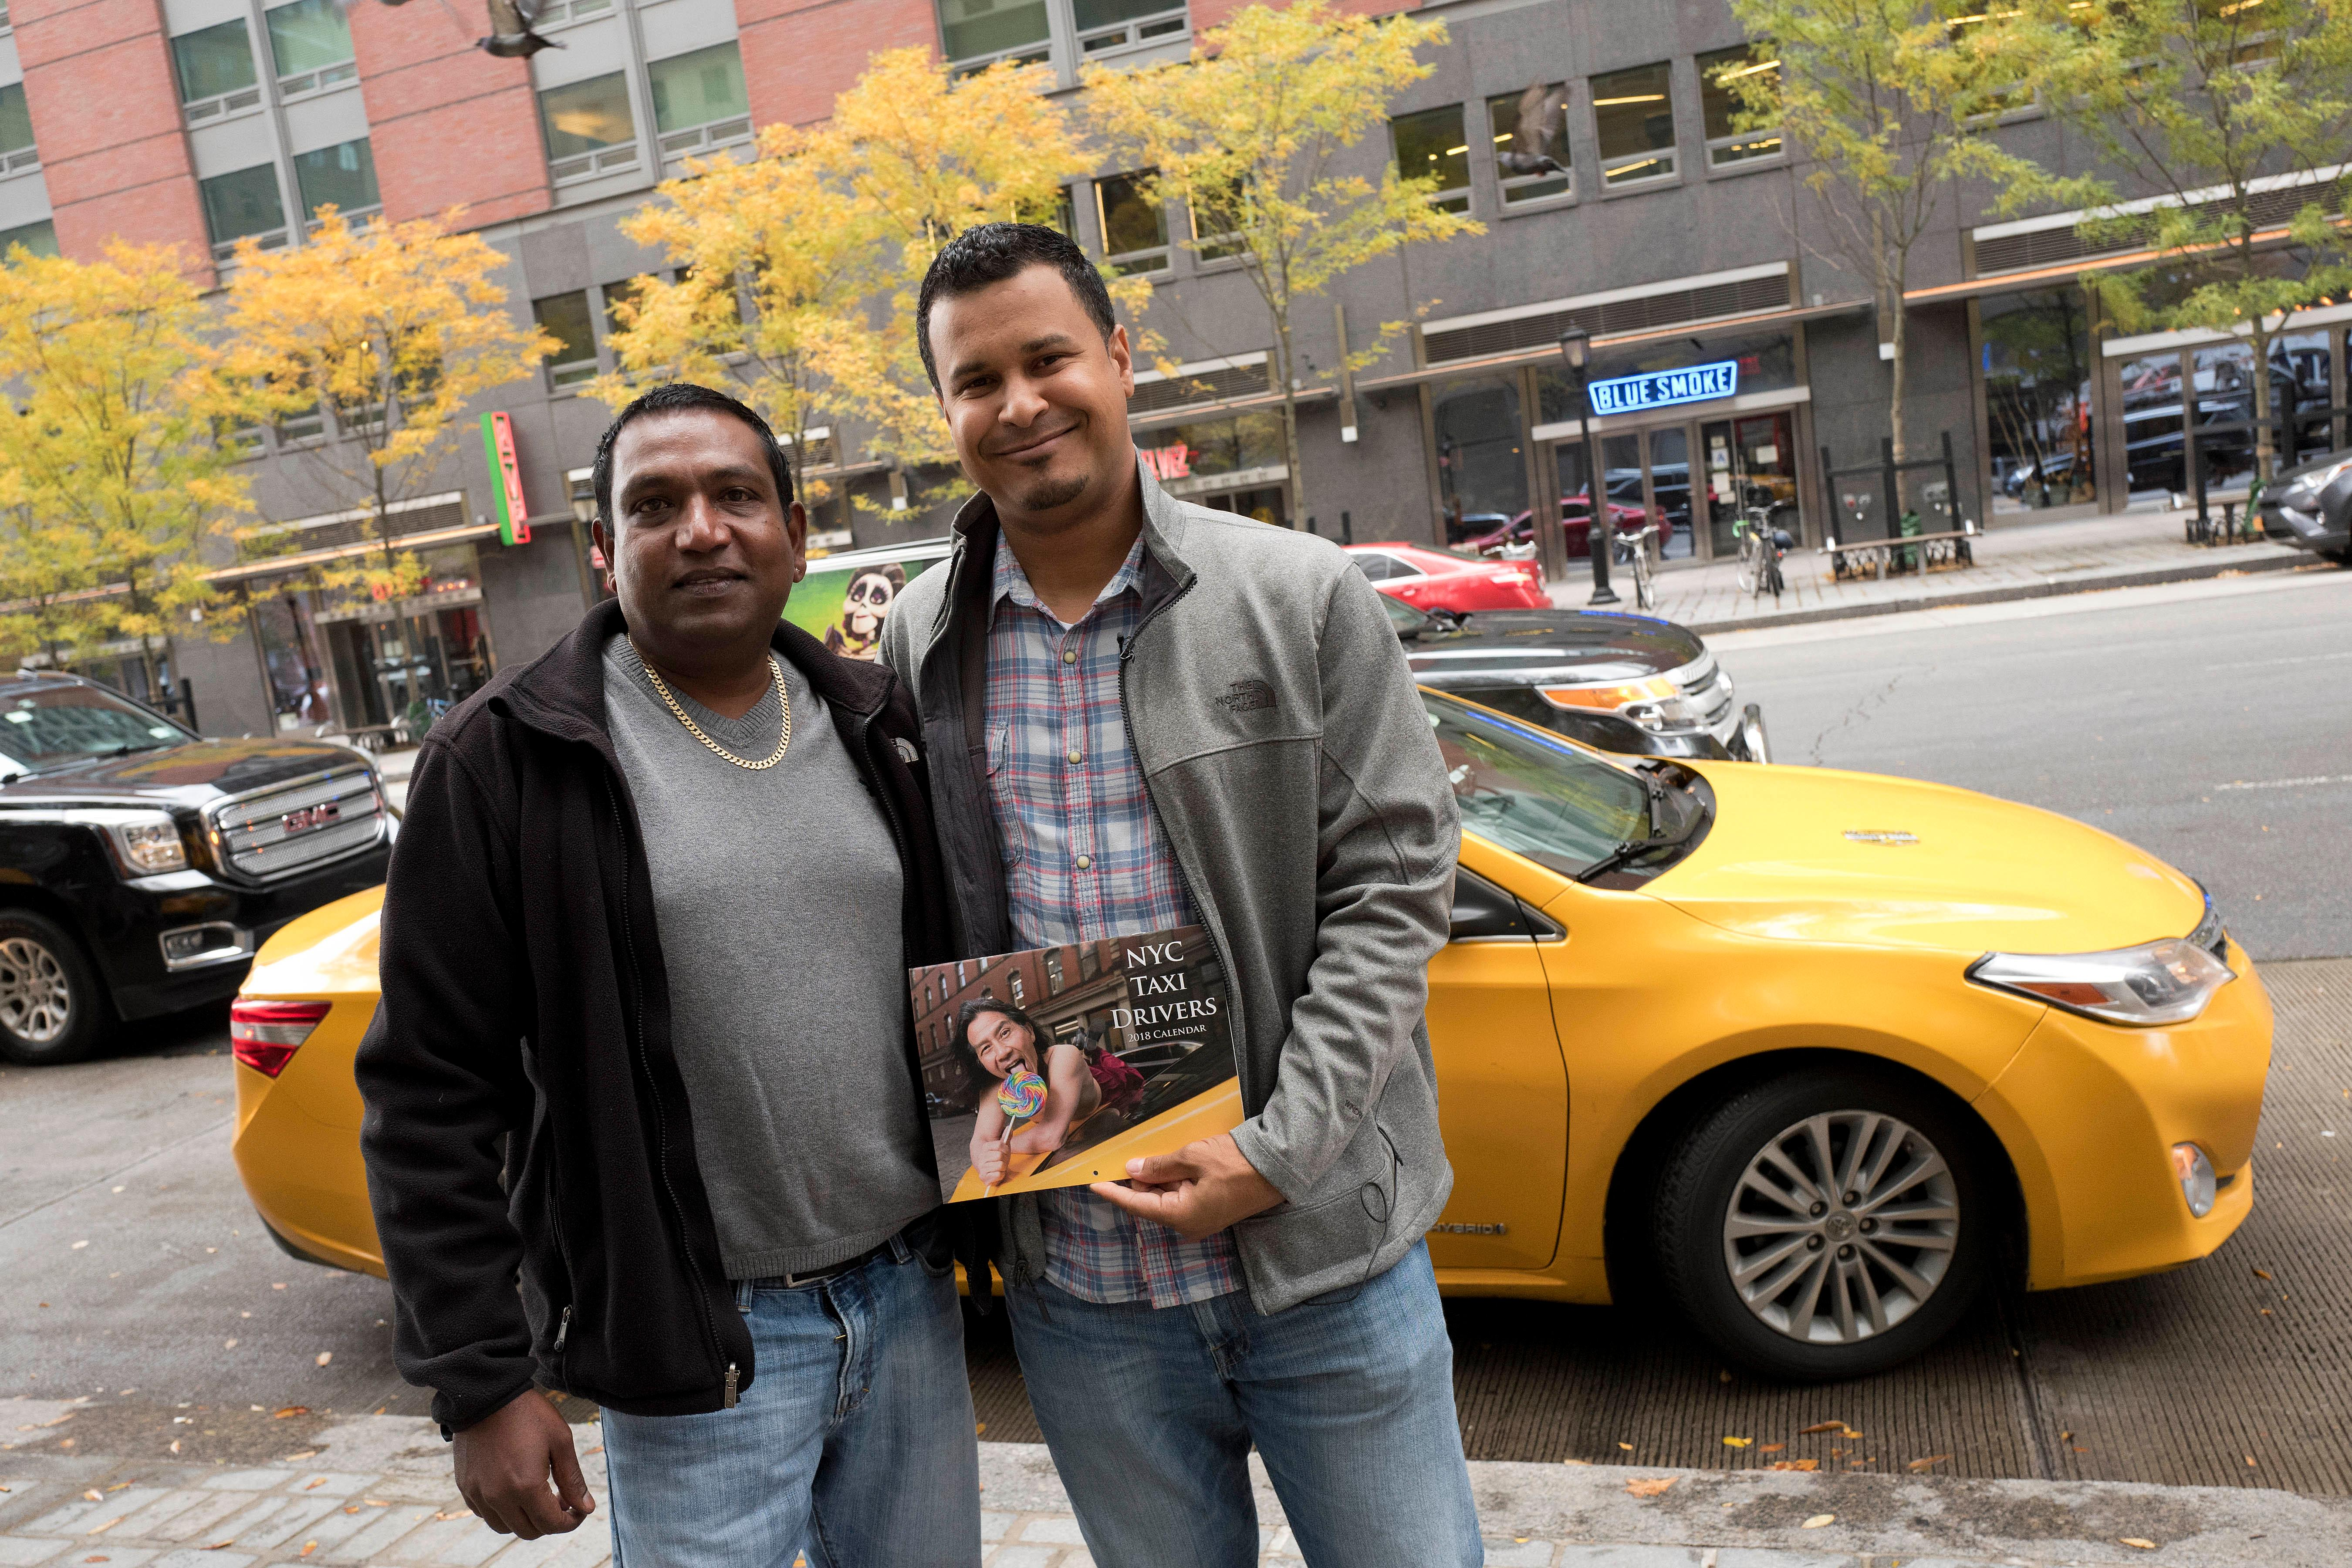 Taxi drivers Terry Samlall, left, and Luis Marte pose for a photo with a copy of the NYC Taxi Drivers calendar, Thursday, Nov. 16, 2017 in New York. Both are featured in the fund-raising calendar. The NYC Taxi Drivers Calendar has twelve New York City cabbies smirking and smoldering their way through 2018 in a tongue-in-cheek pinup calendar that's raising money for a venerable social-service organization.(AP Photo/Mark Lennihan)